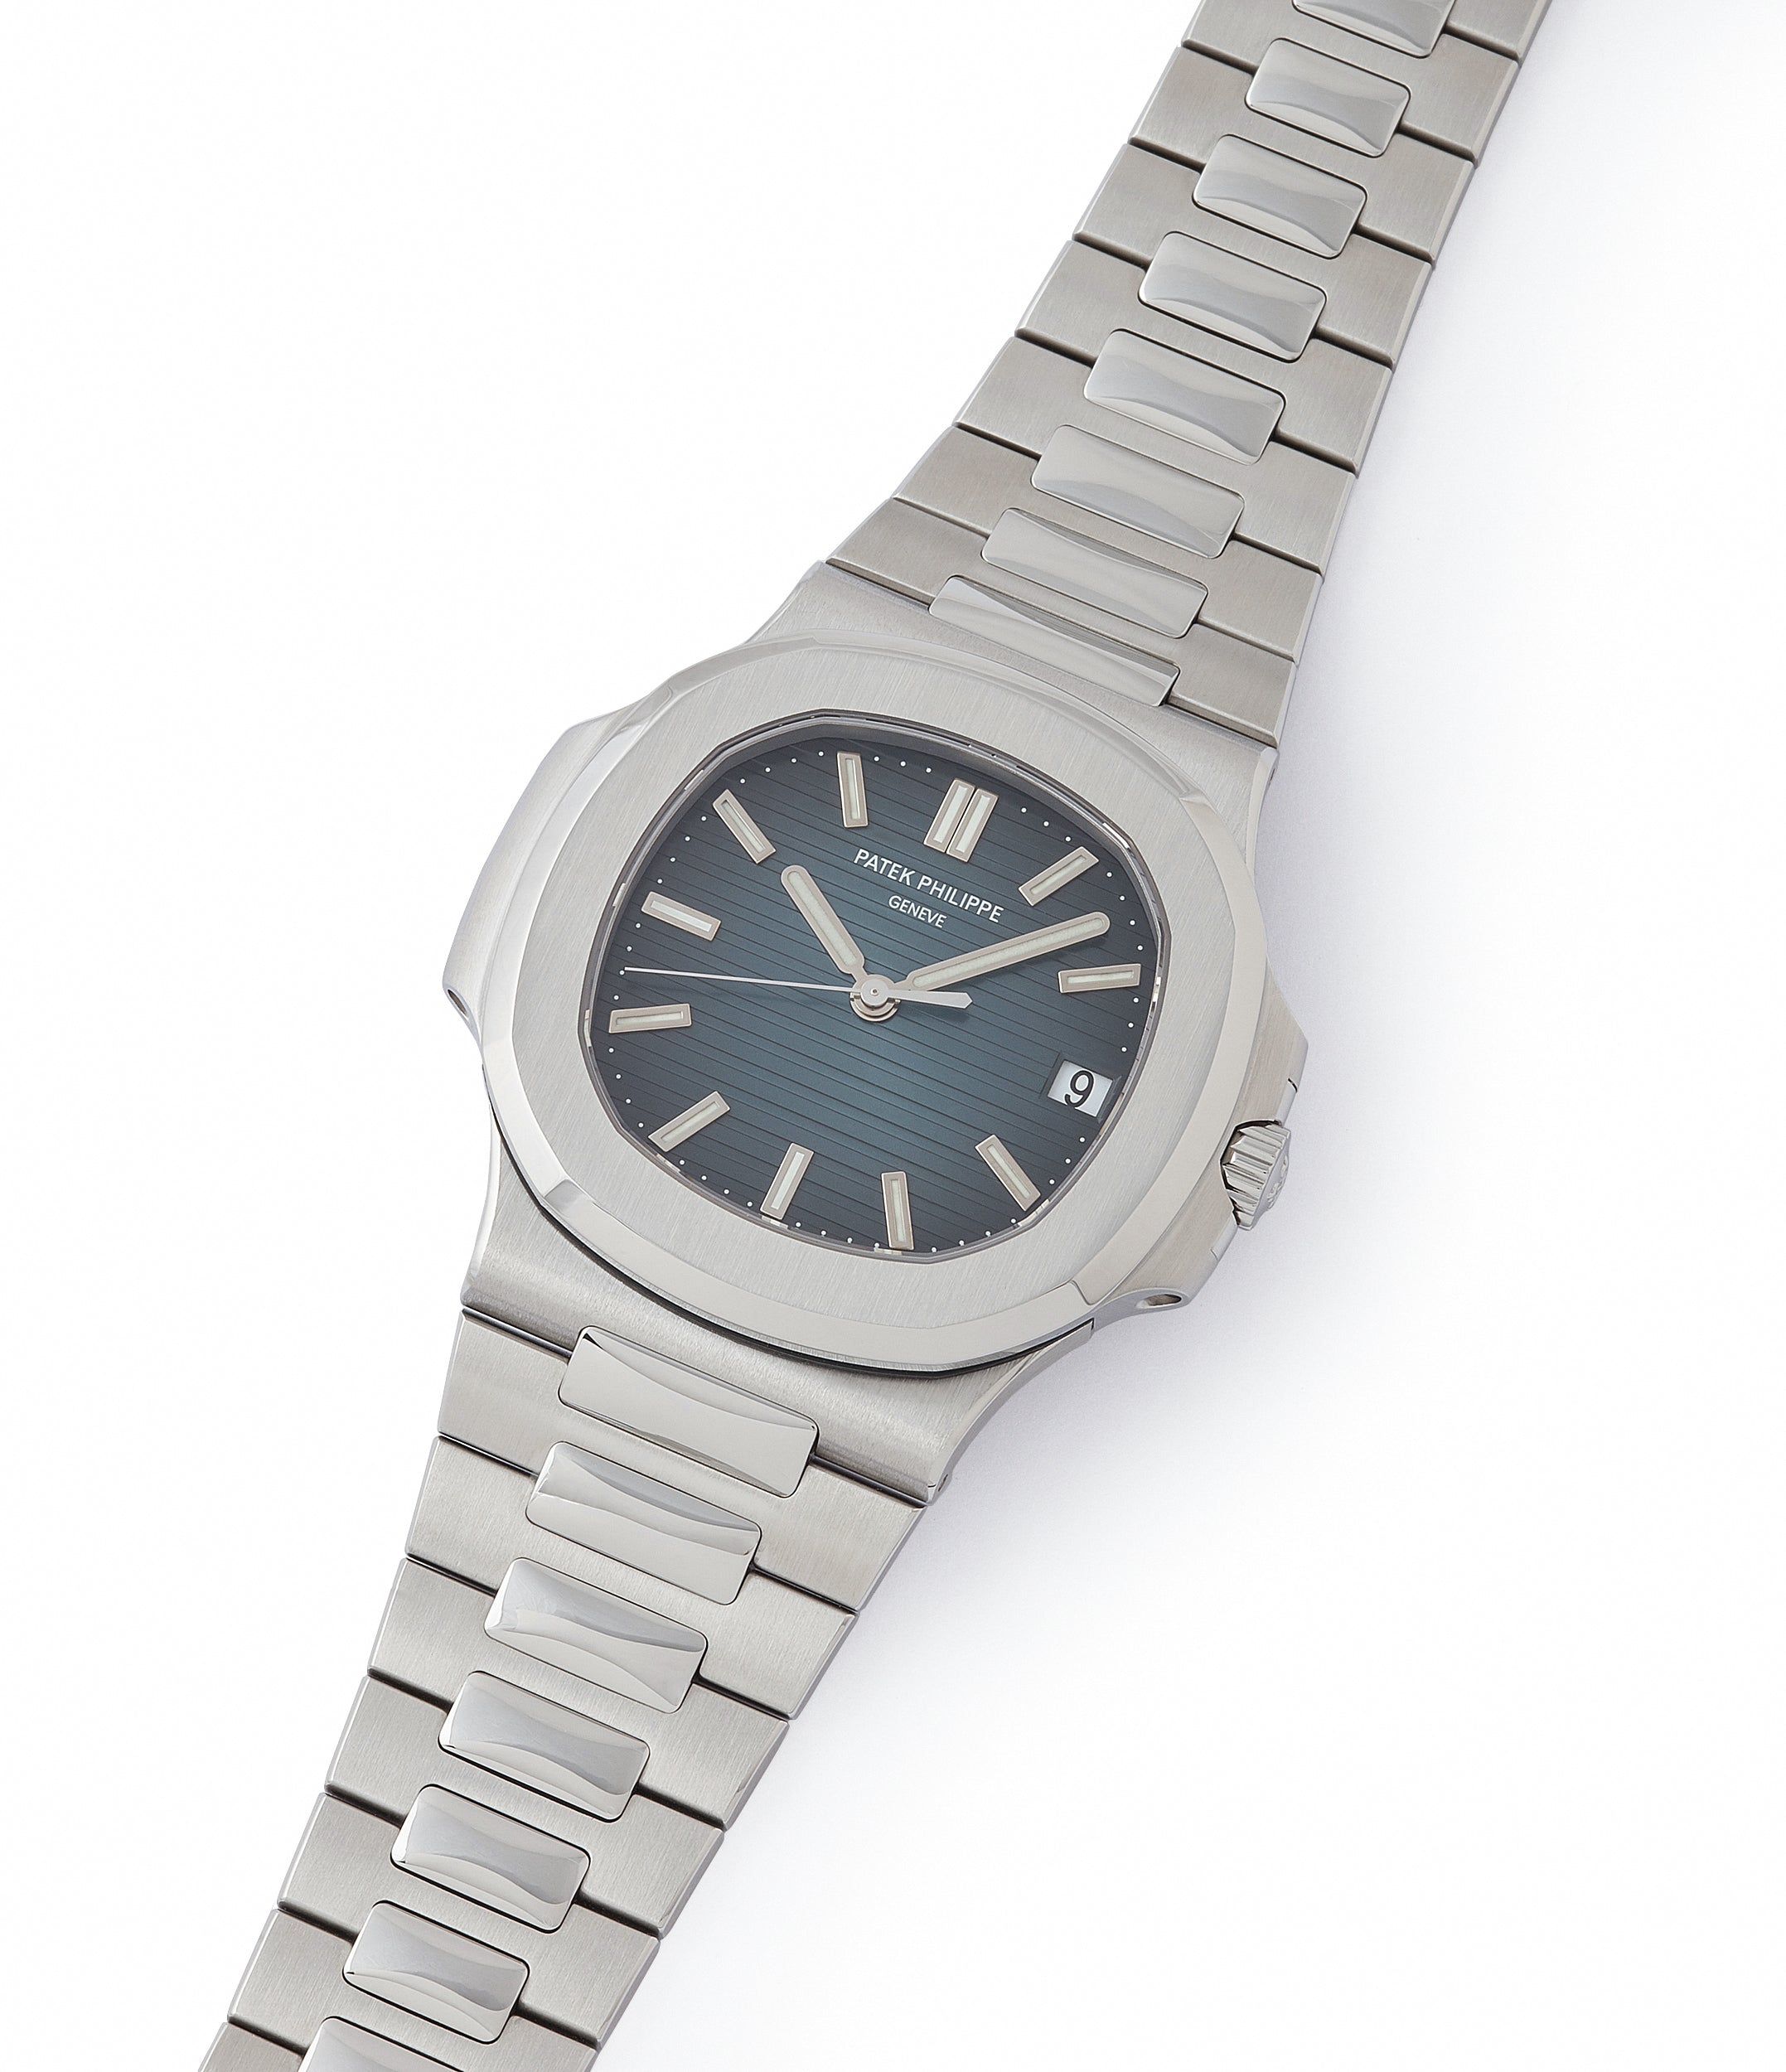 shop Patek Philippe London Jumbo Nautilus 5711/1A-001 steel pre-owned sport watch for sale online at A Collected Man London UK specialist of rare watches